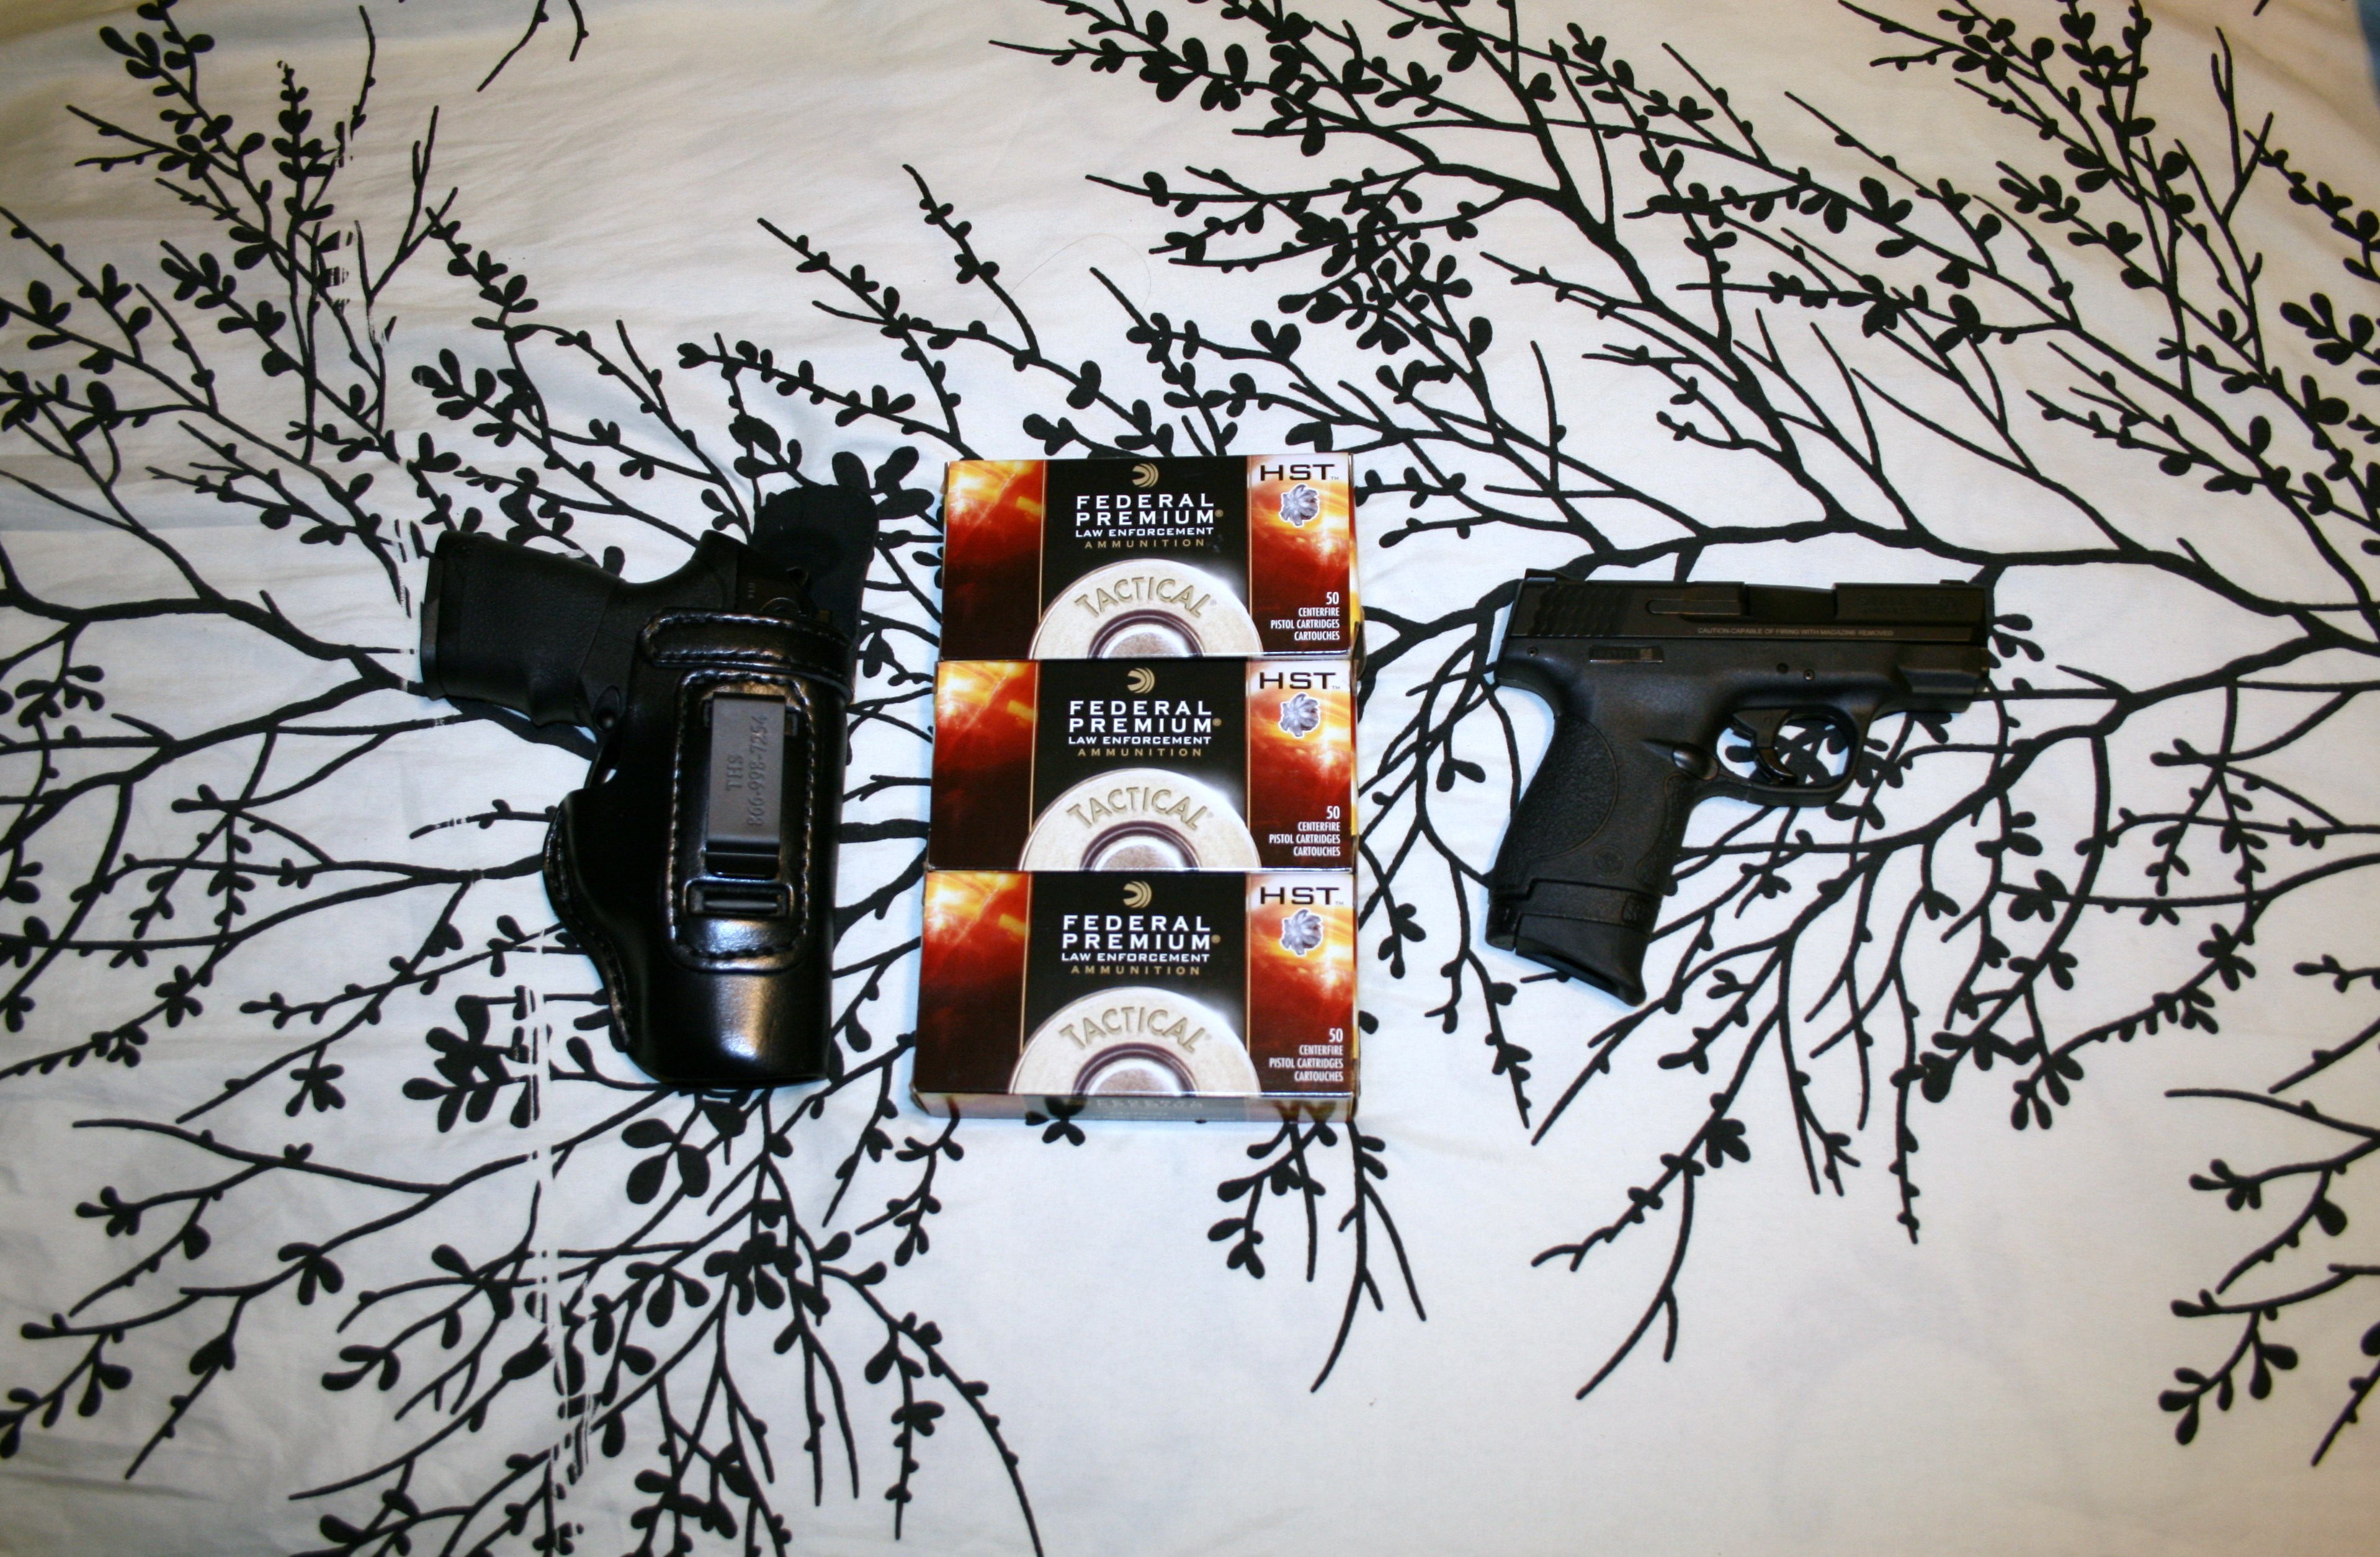 Anybody get anything good that's firearm related today?-img_8289.jpg